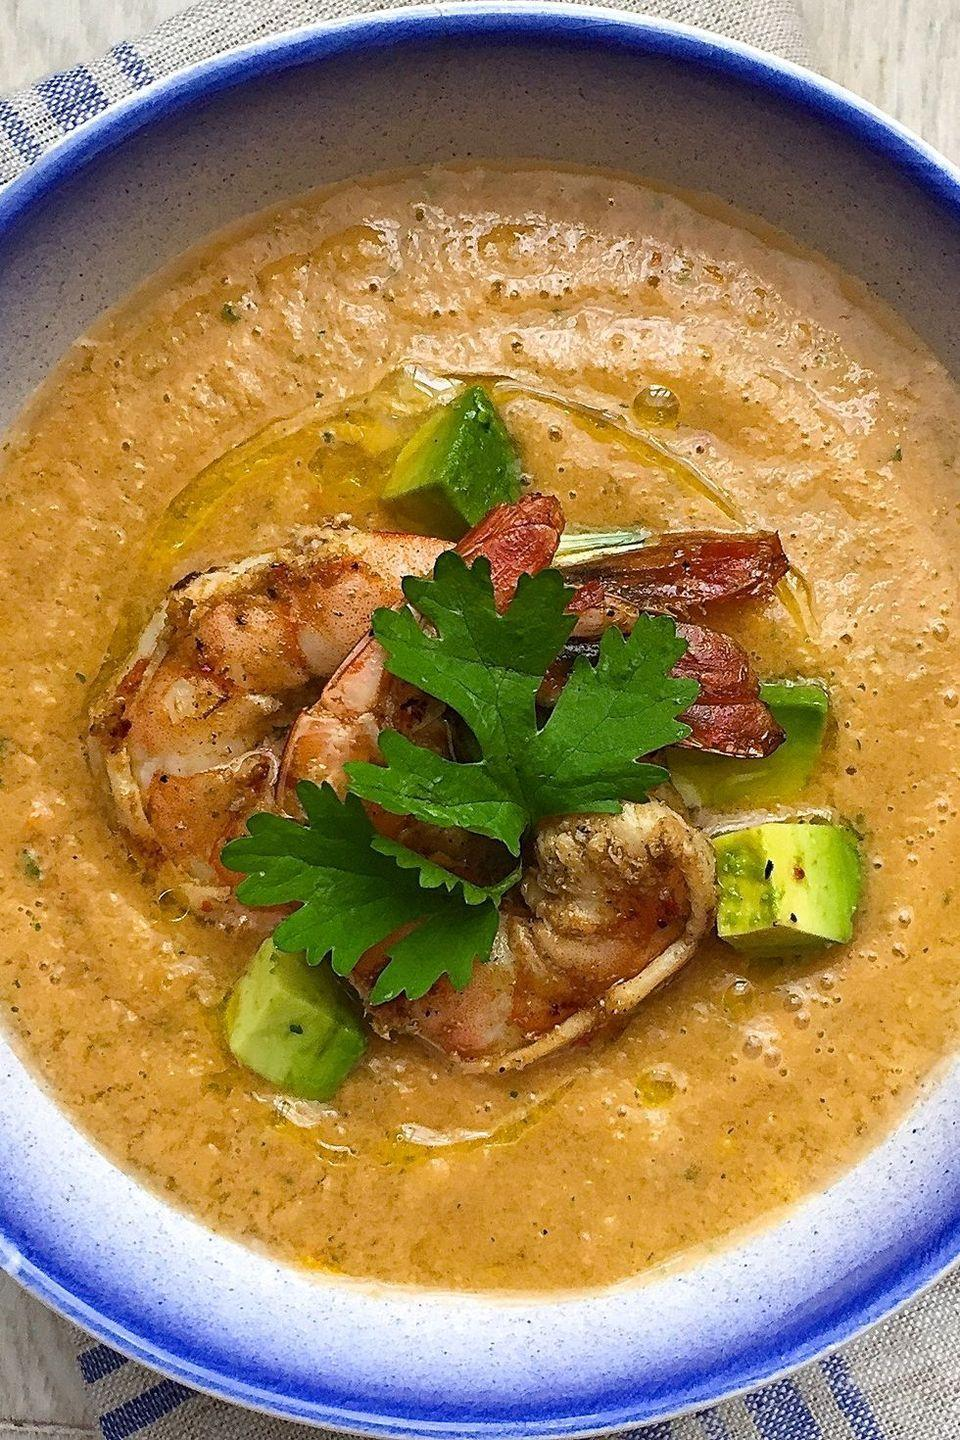 """<p>Add grilled shrimp to give gazpacho a boost of protein.<br><br>Get the recipe from <a href=""""https://www.delish.com/cooking/recipe-ideas/recipes/a42997/tomato-gazpacho-avocado-grilled-shrimp/"""" rel=""""nofollow noopener"""" target=""""_blank"""" data-ylk=""""slk:Delish"""" class=""""link rapid-noclick-resp"""">Delish</a>.</p>"""